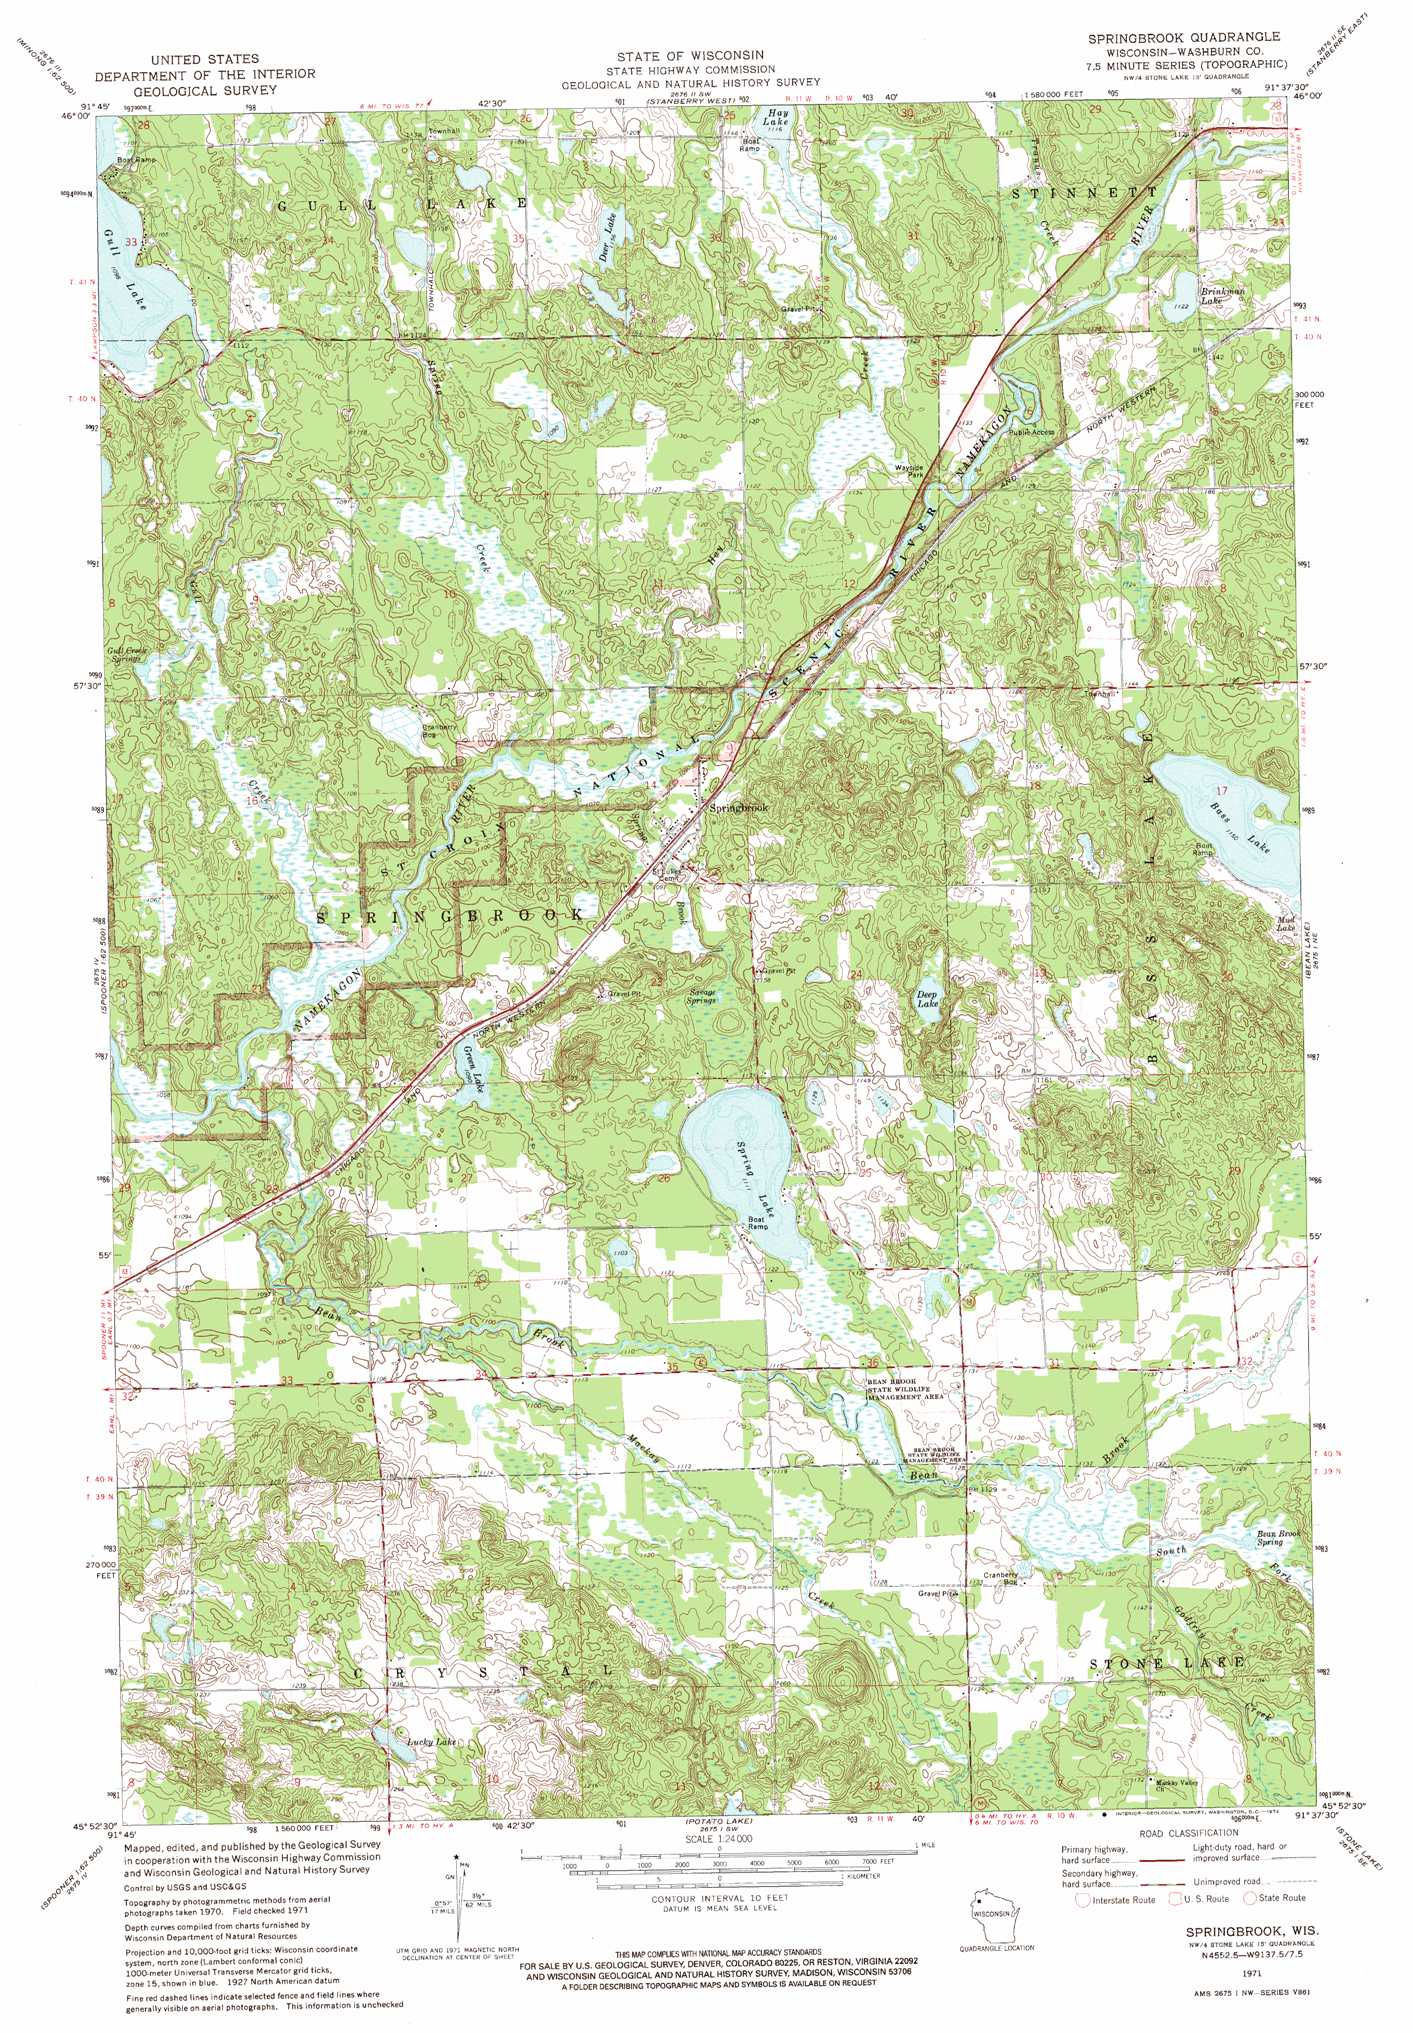 Springbrook topographic map, WI - USGS Topo Quad 45091h6 on la pointe wisconsin map, powers lake wisconsin map, sarona wisconsin map, tipler wisconsin map, danbury wisconsin map, washburn county wisconsin map, webb lake wisconsin map, minong wisconsin map, bayfield county wisconsin map, brantwood wisconsin map, birchwood wisconsin map, trego wisconsin map, hager city wisconsin map, long lake wisconsin map, stone lake wisconsin map, glidden wisconsin map, sawyer county wisconsin map, upson wisconsin map, spooner wisconsin map,